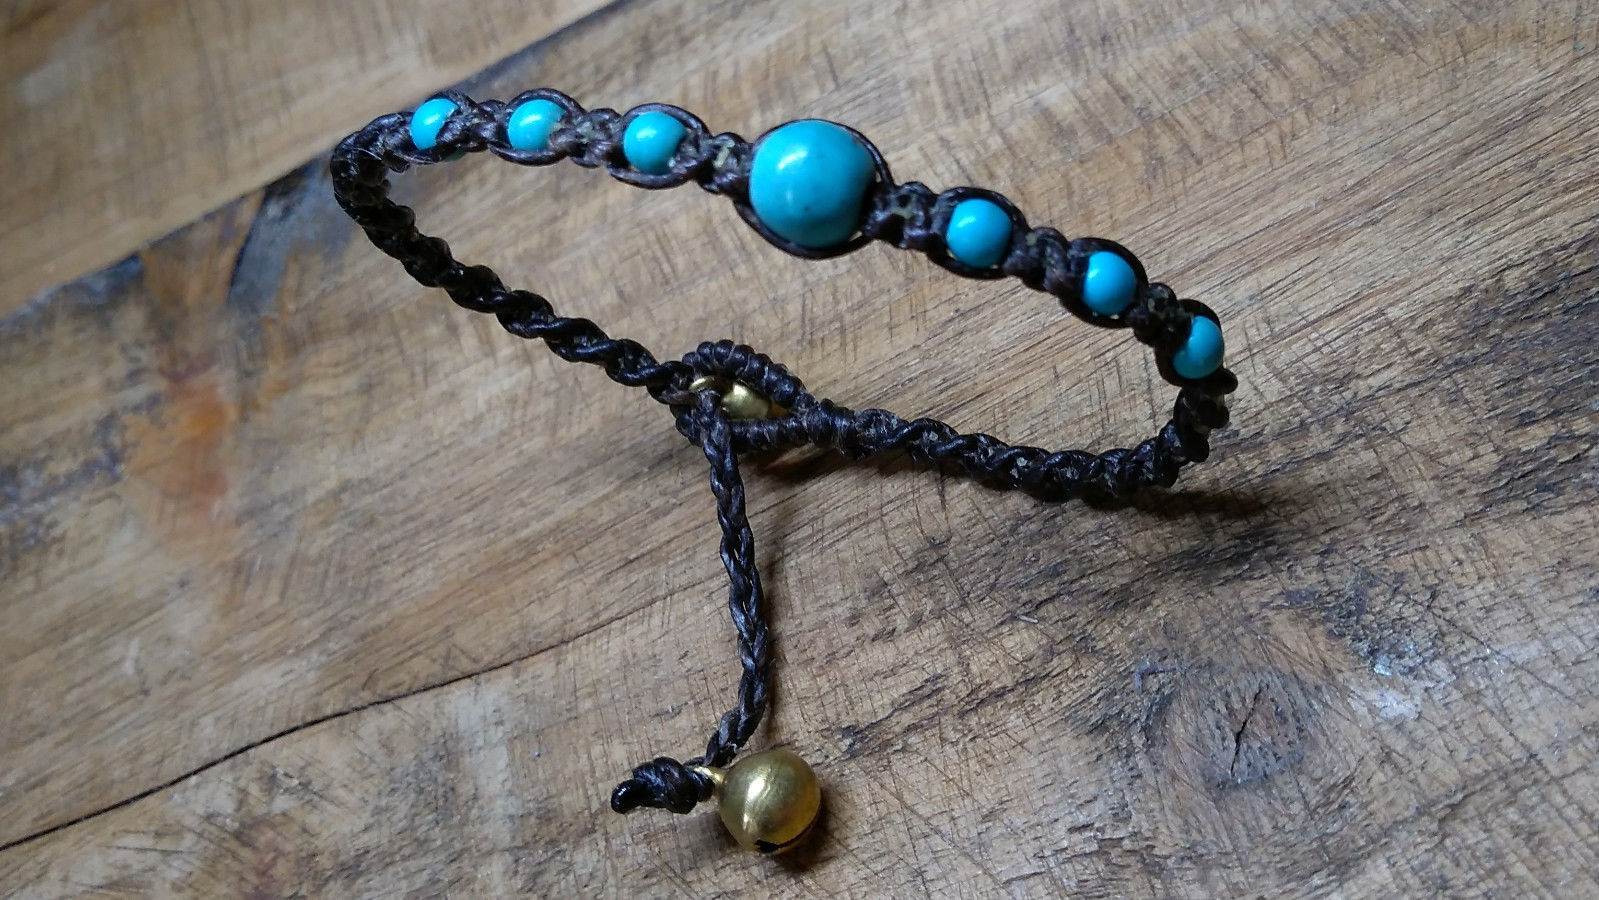 2 Handcrafted Turquoise Bead Thai Wristbands Bracelets Handmade In Thailand